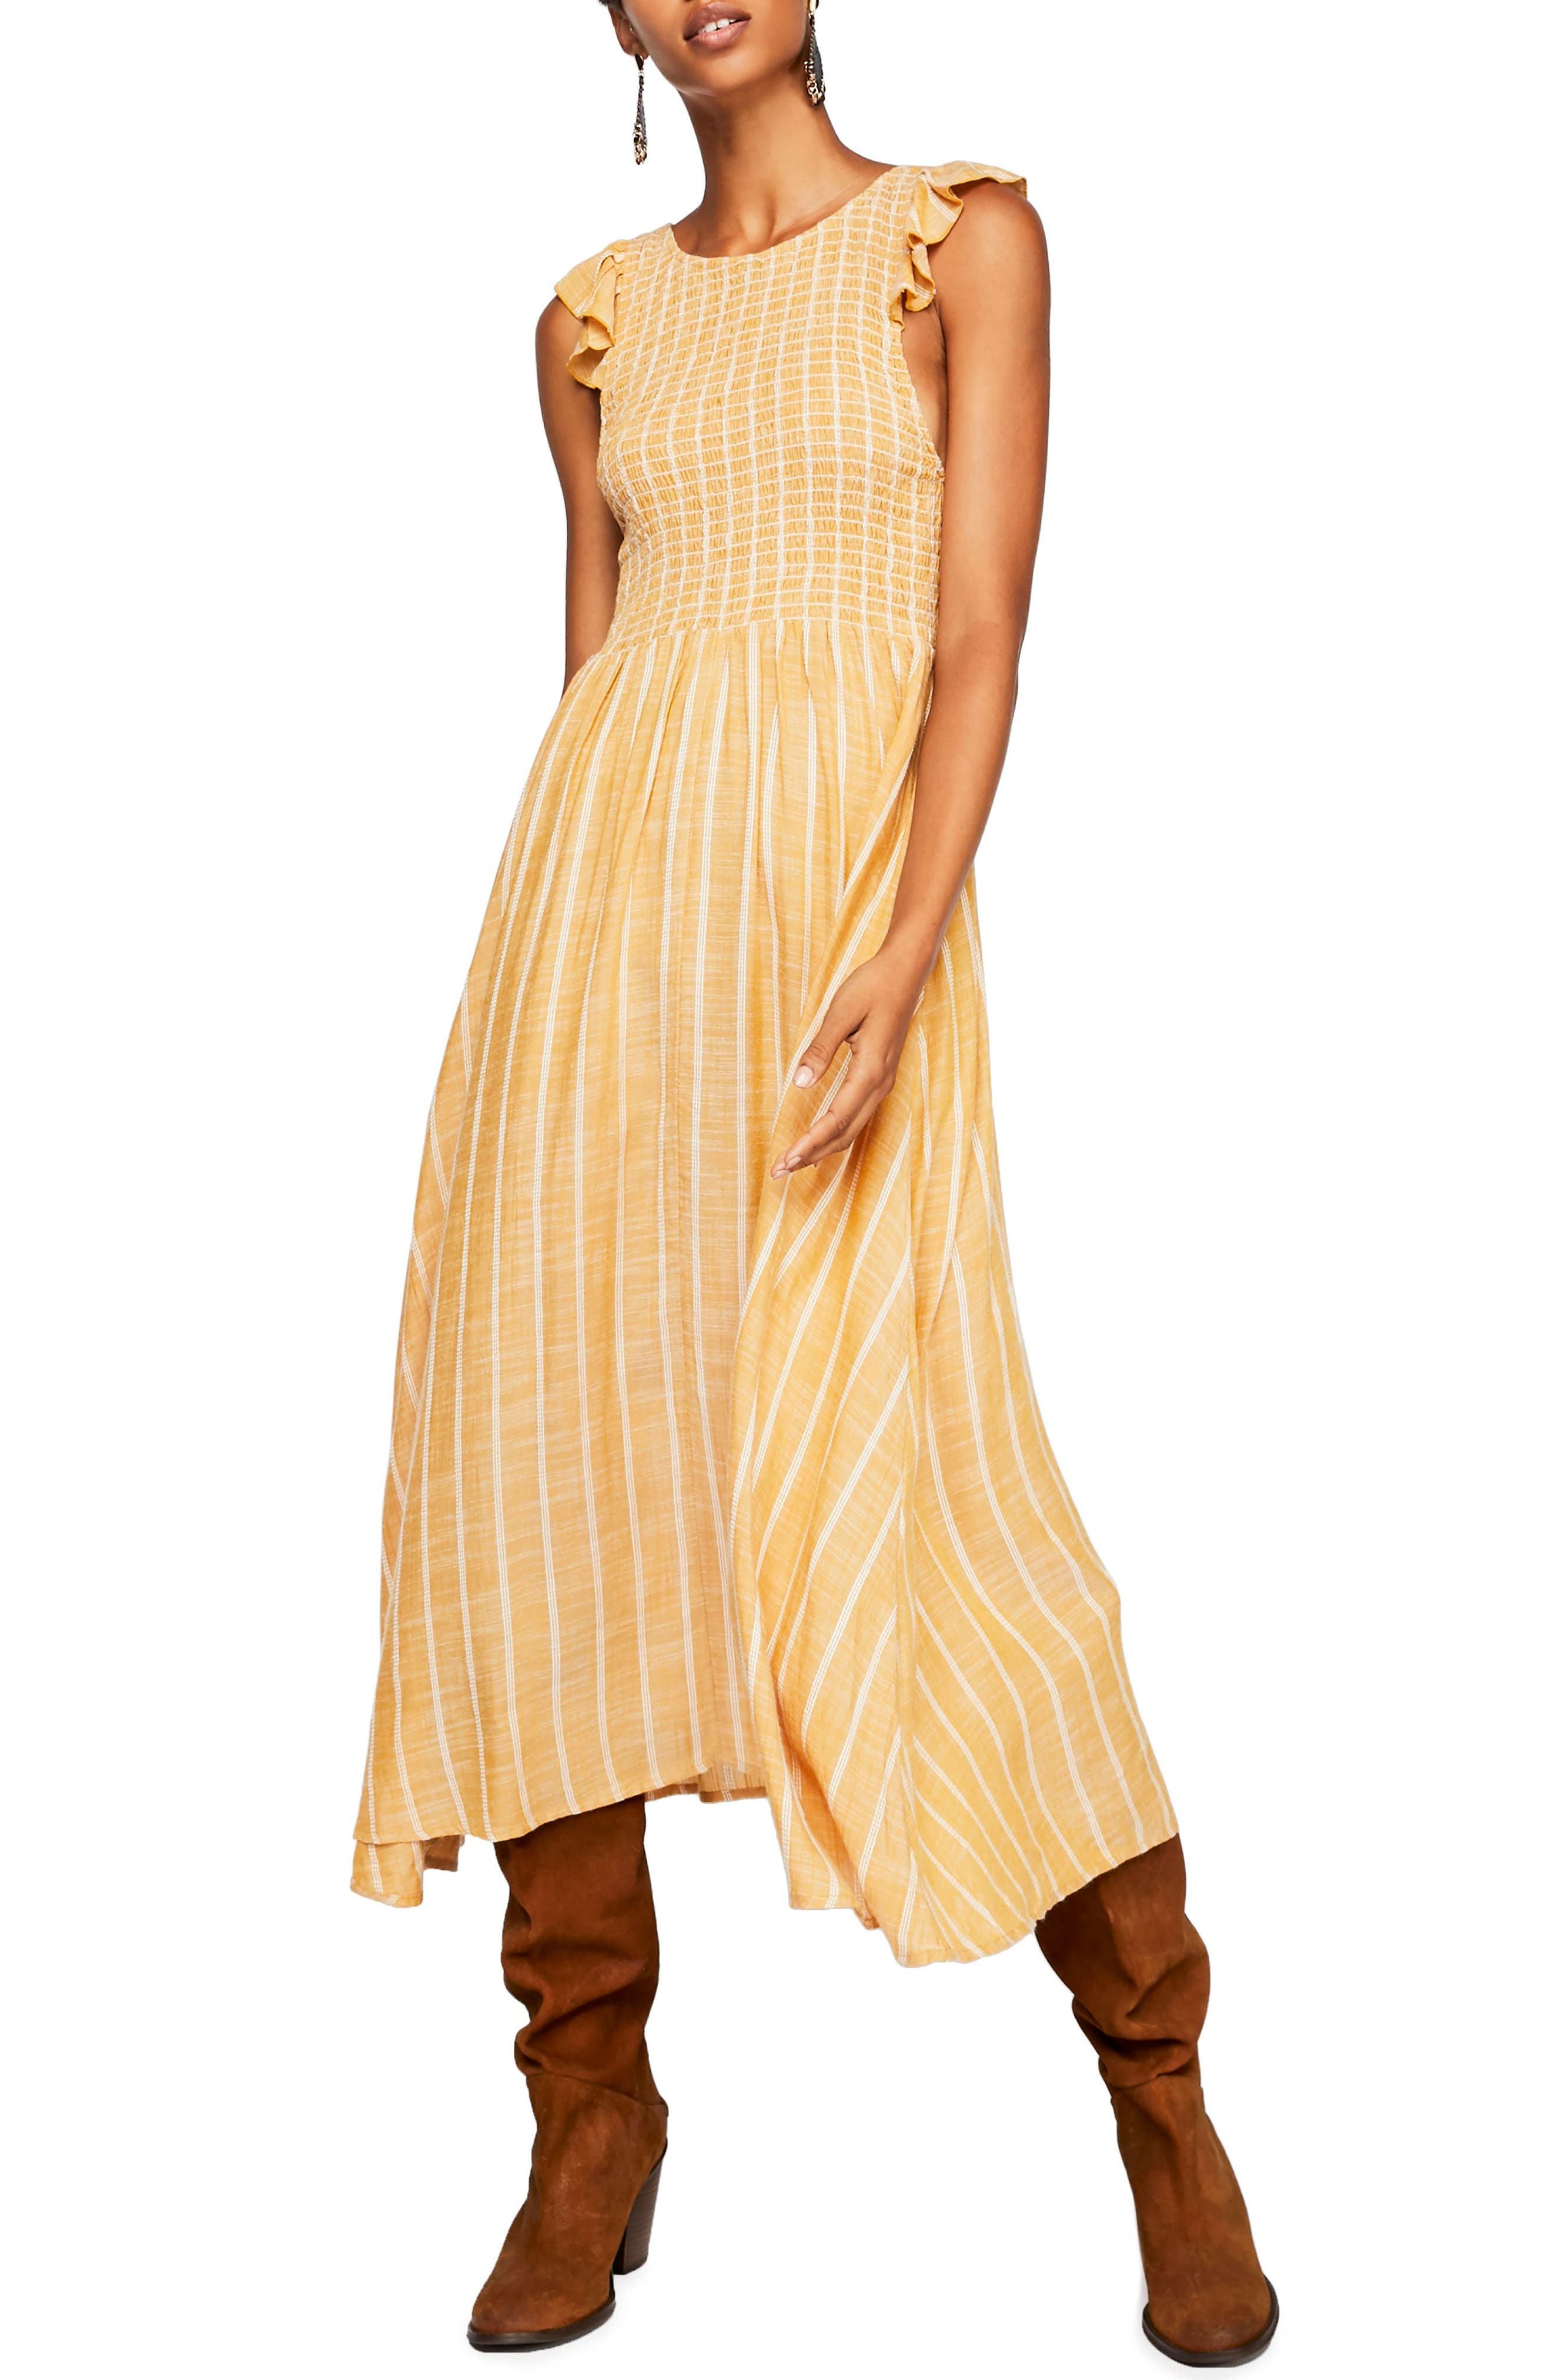 FREE PEOPLE, Butterflies Chambray Midi Dress, Main thumbnail 1, color, GOLD